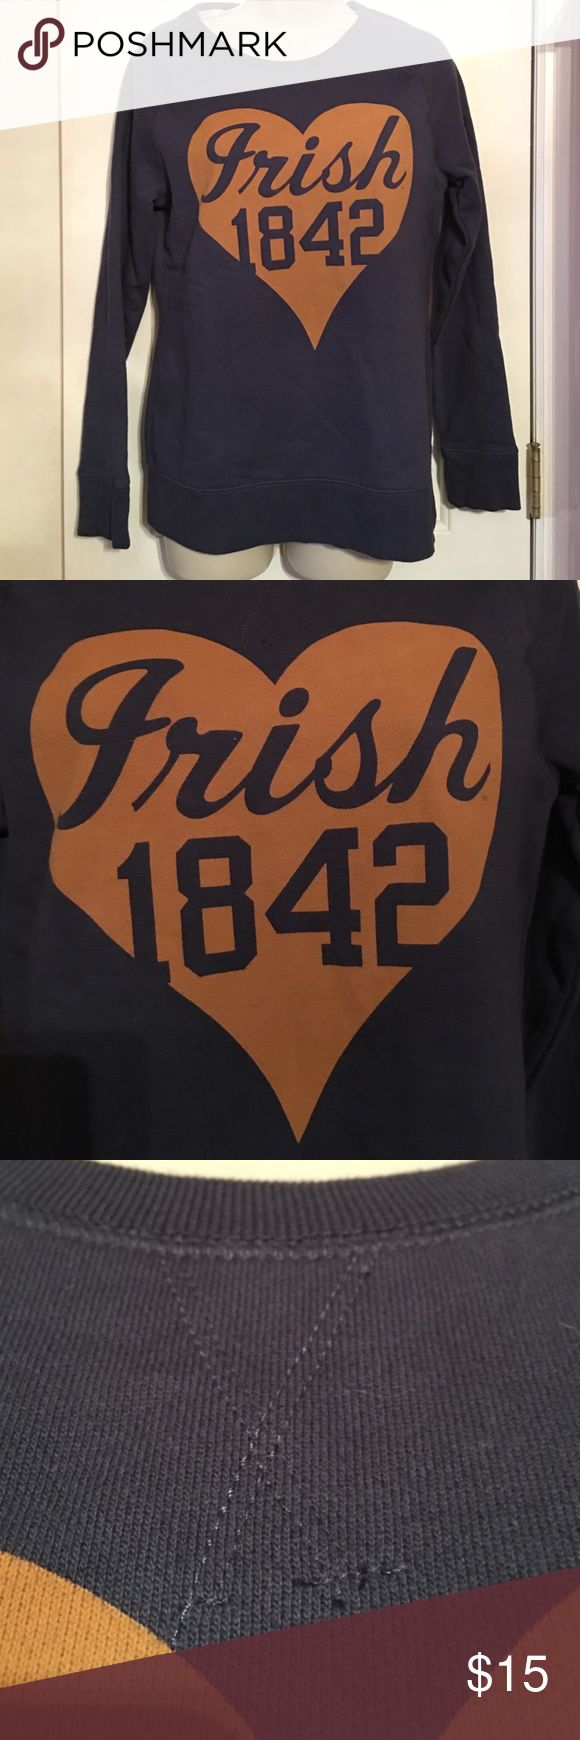 NWOT Old Navy Notre Dame sweatshirt sz never worn! Tag says University T, but it was bought at old navy. Sweatshirt is navy and heart is gold Old Navy Tops Sweatshirts & Hoodies